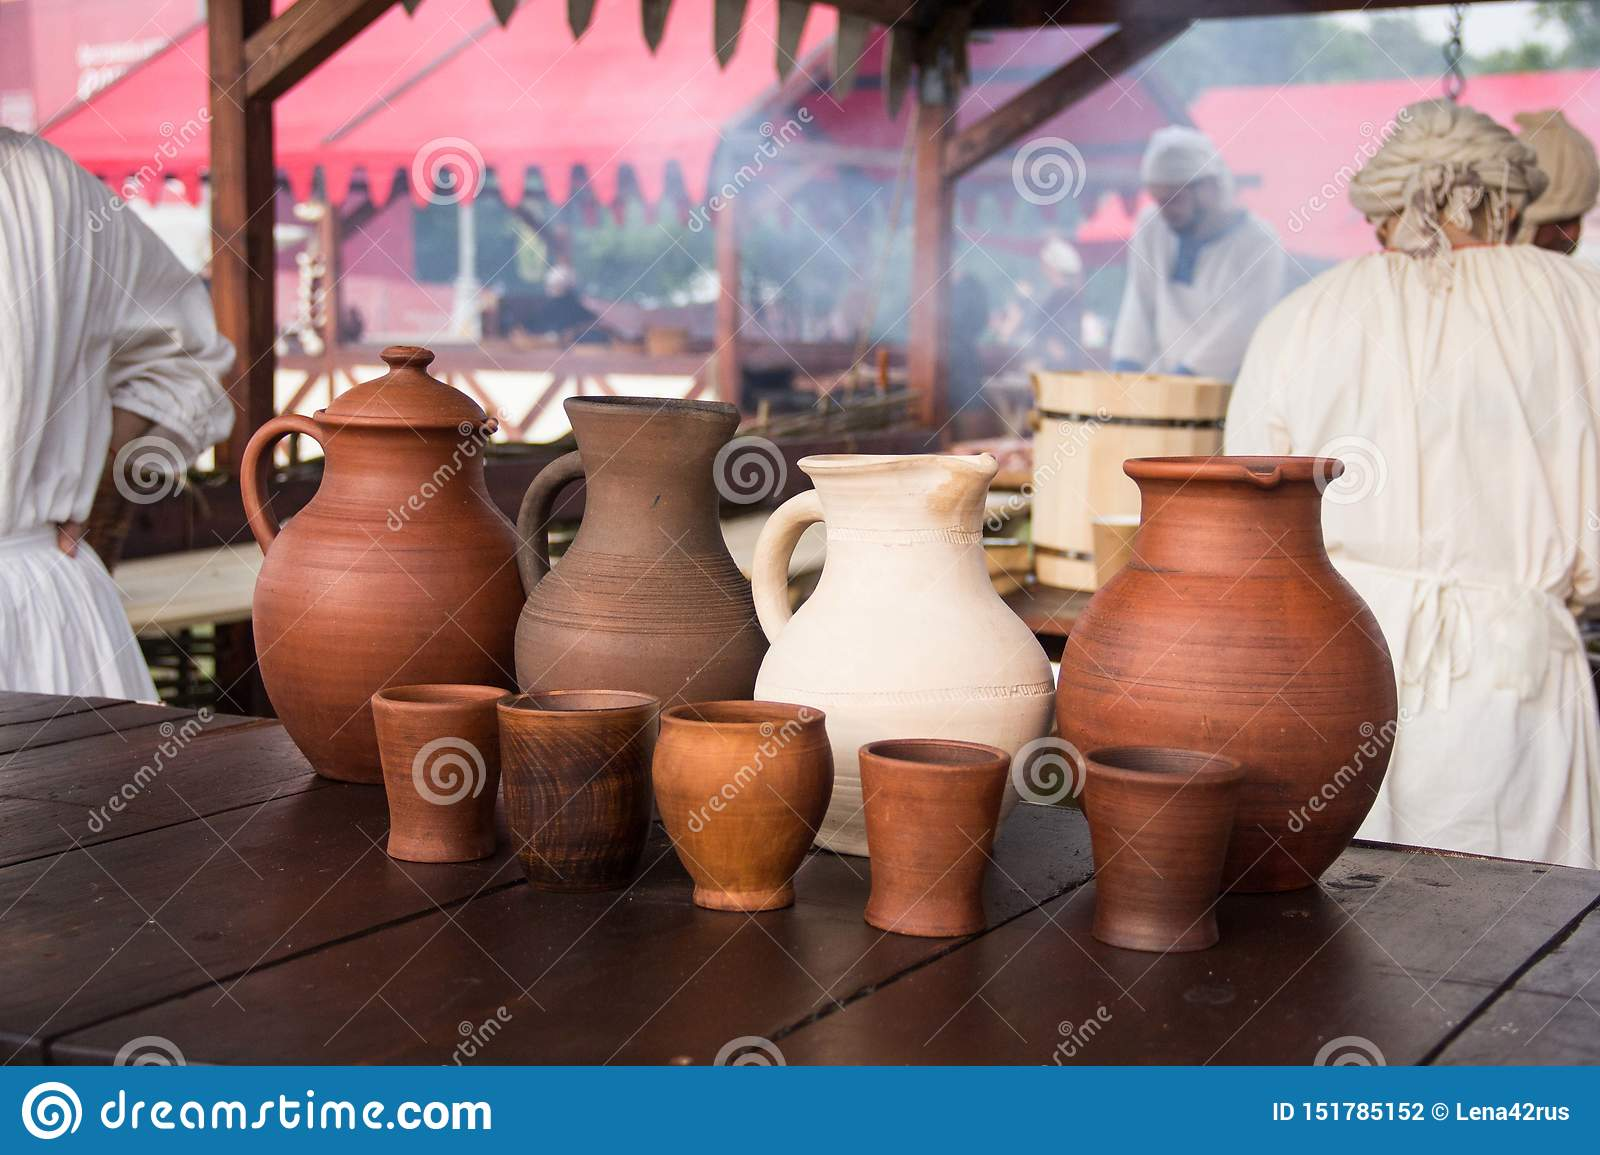 A wine jug and set of clay cups on the wooden table